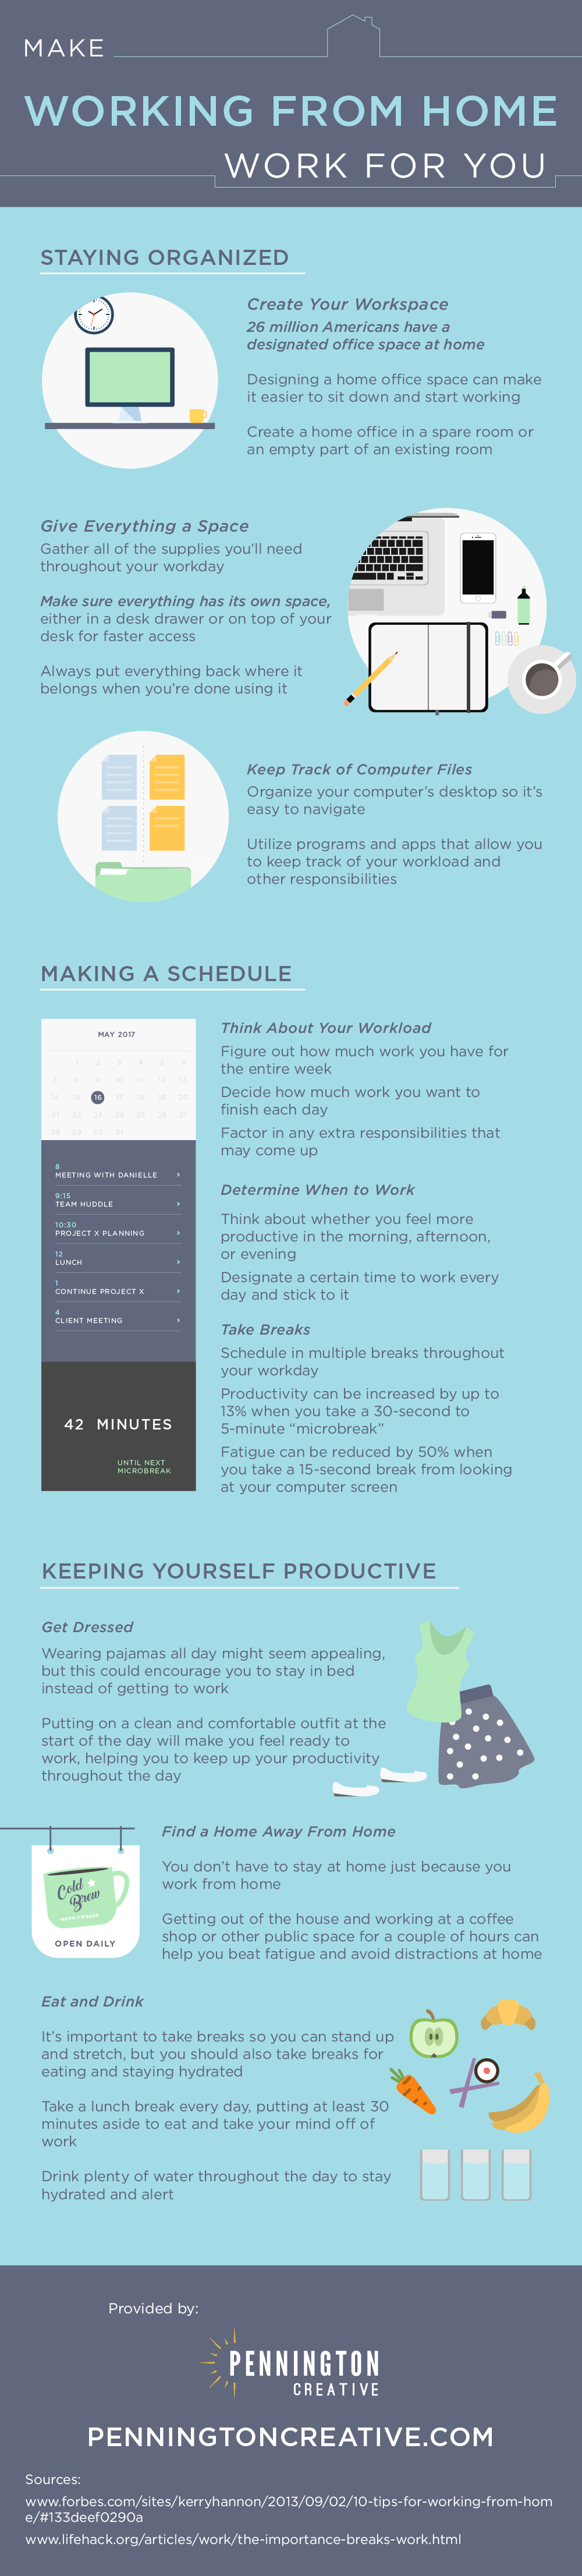 Infographic with tips for people who work from home.